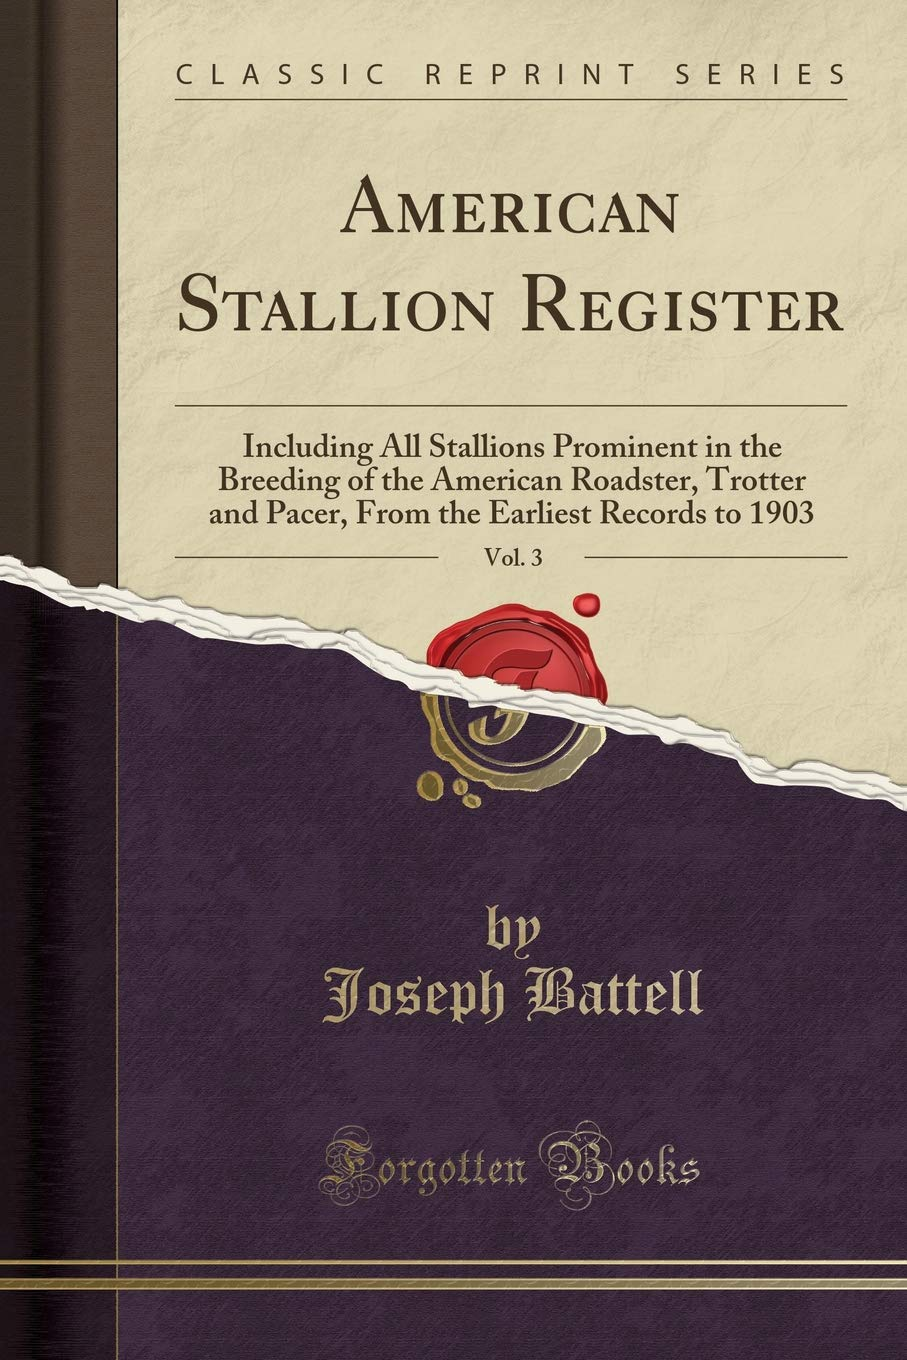 Download American Stallion Register, Vol. 3: Including All Stallions Prominent in the Breeding of the American Roadster, Trotter and Pacer, From the Earliest Records to 1903 (Classic Reprint) pdf